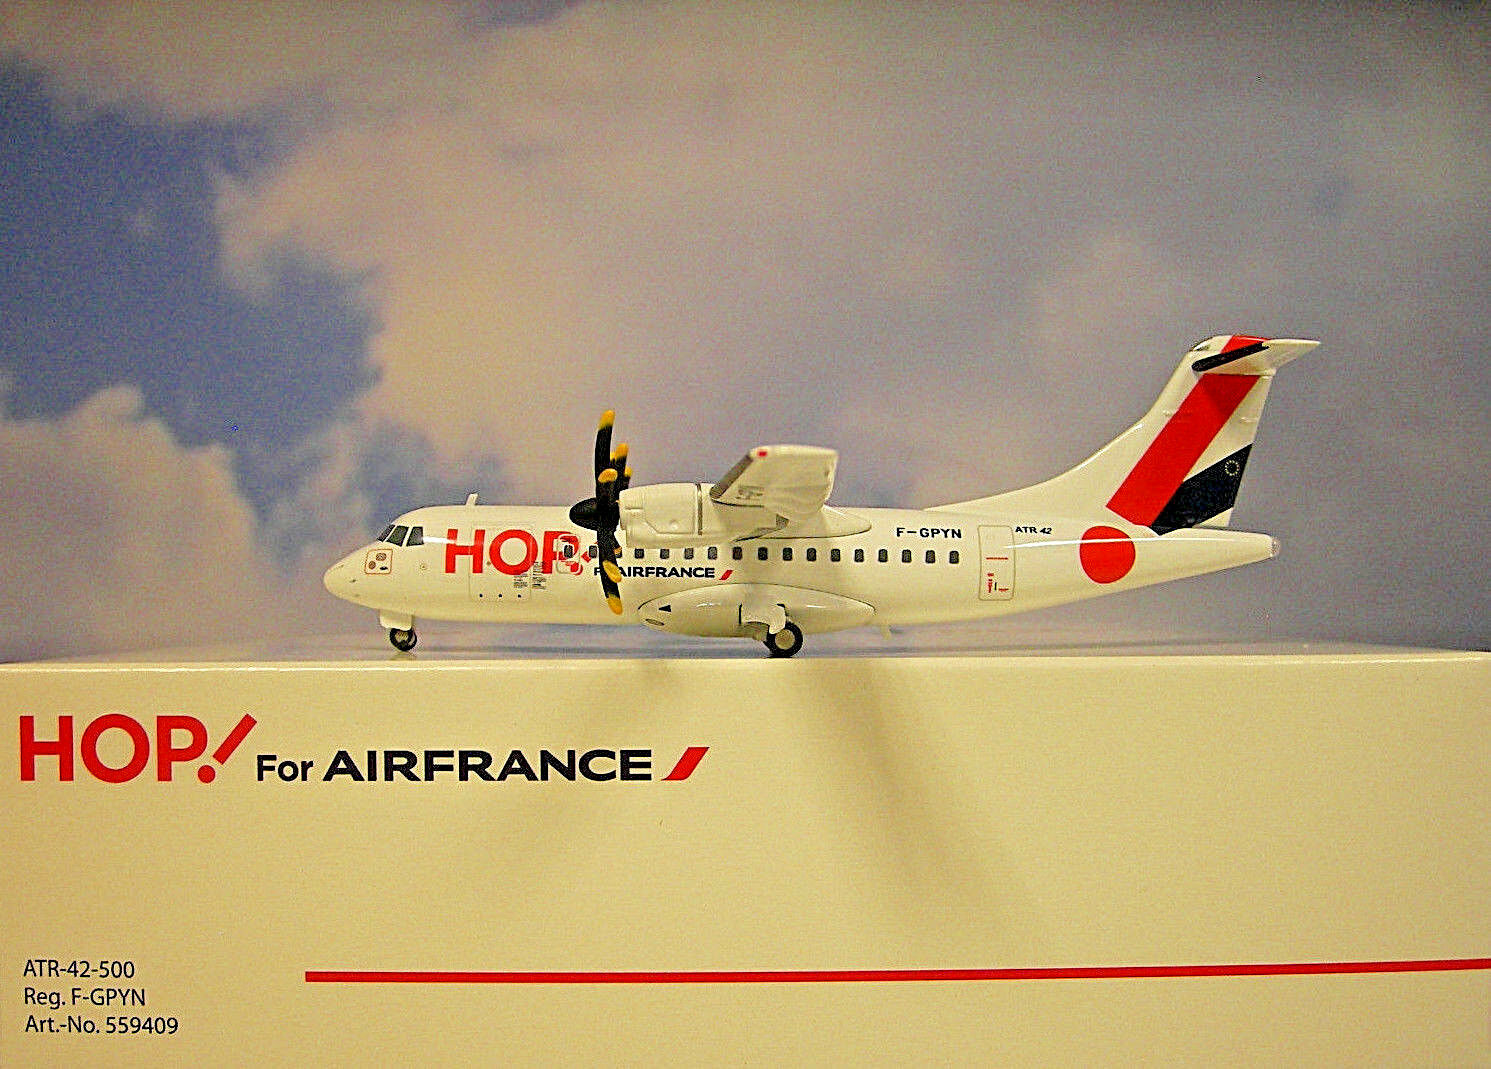 Herpa Wings 1 200 ATR 42-500 Hop for Air fgpyn 559409